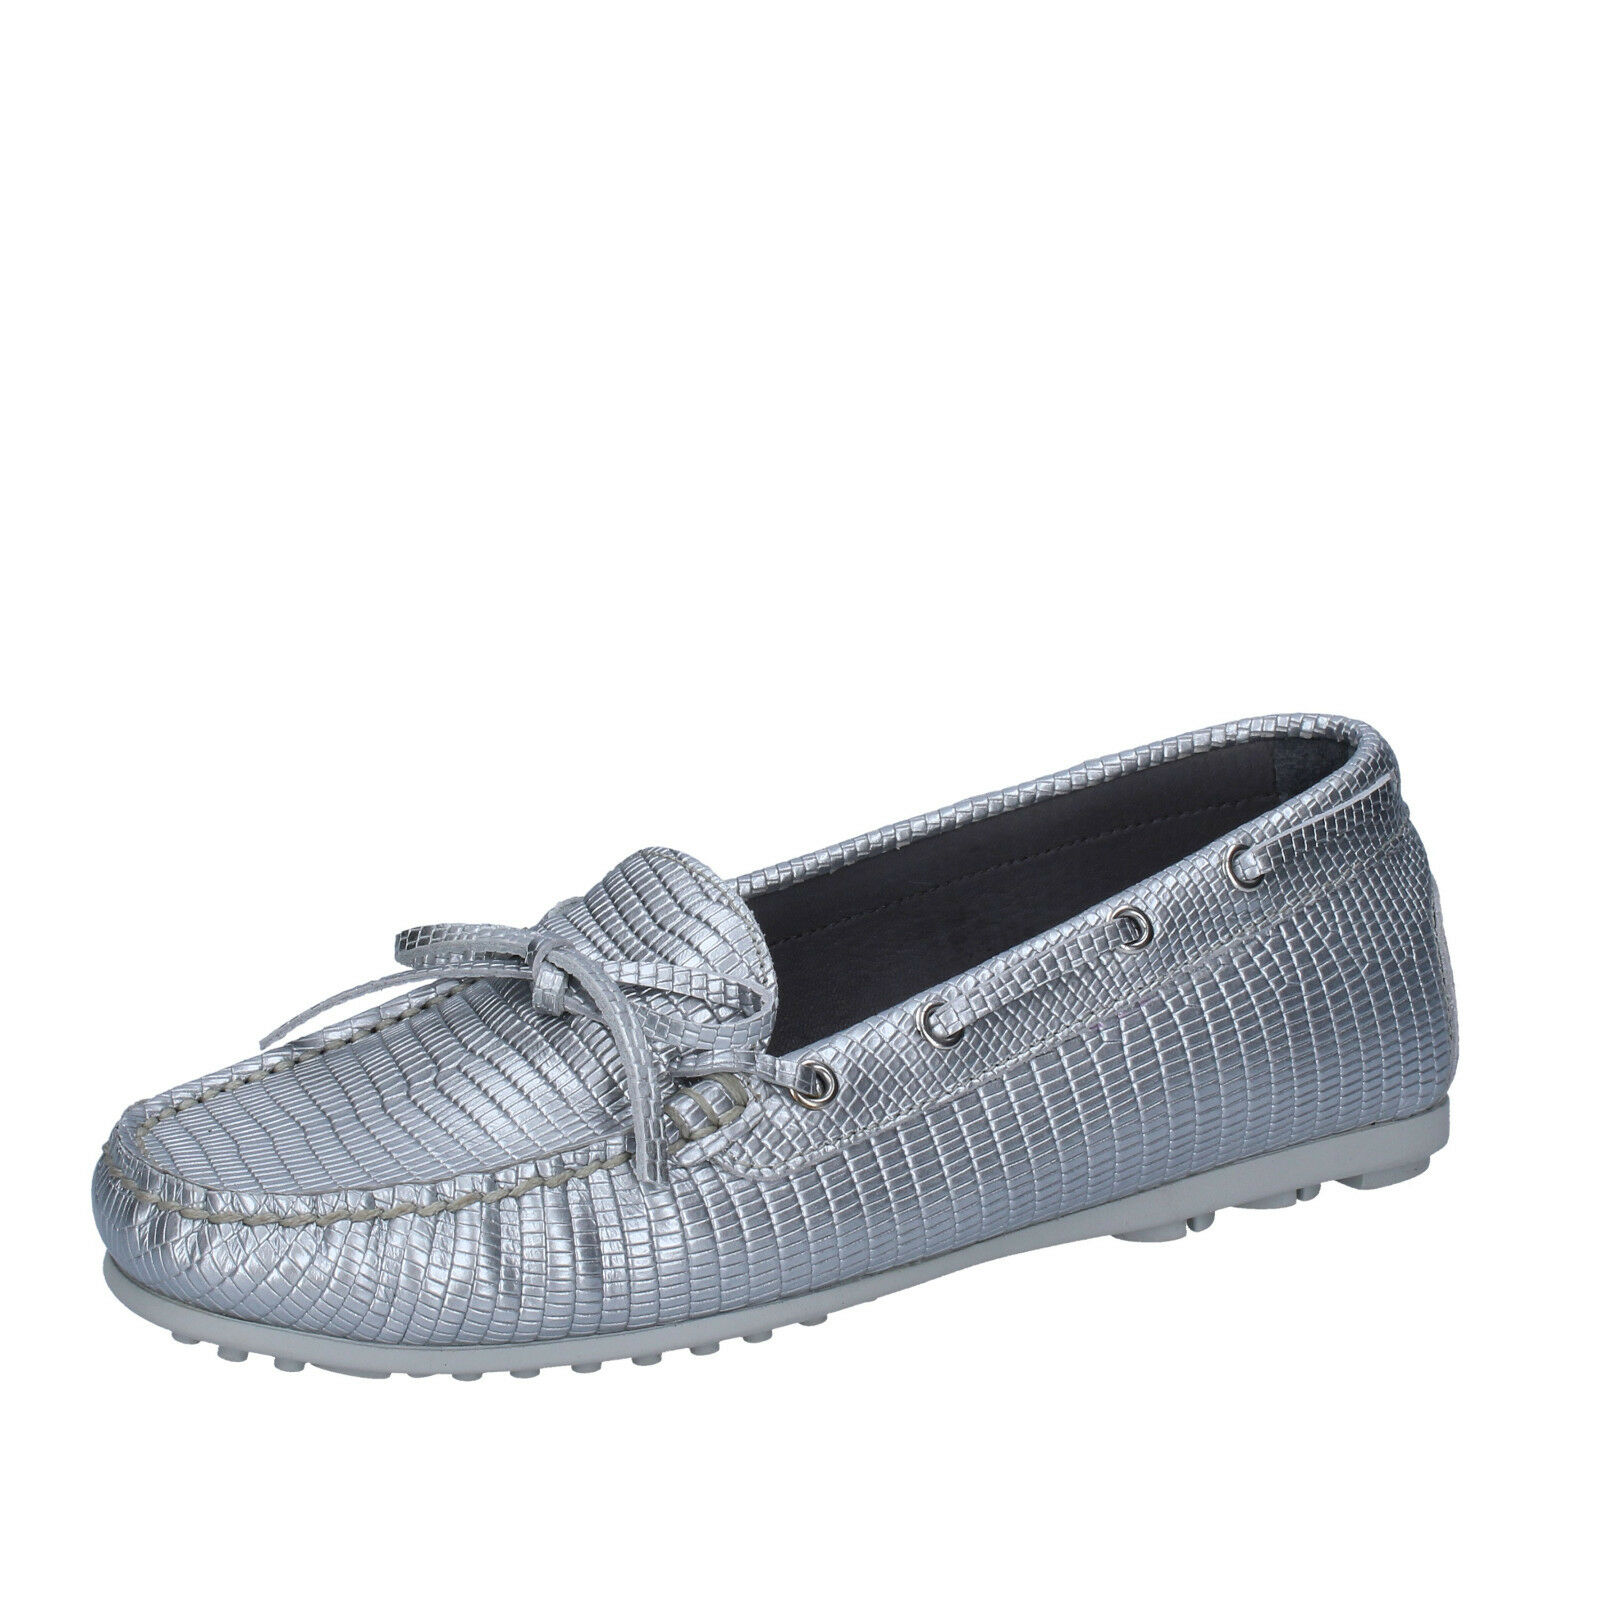 Womens shoes K852 & SON 4 (EU 37) slip on silver leather BT934-37